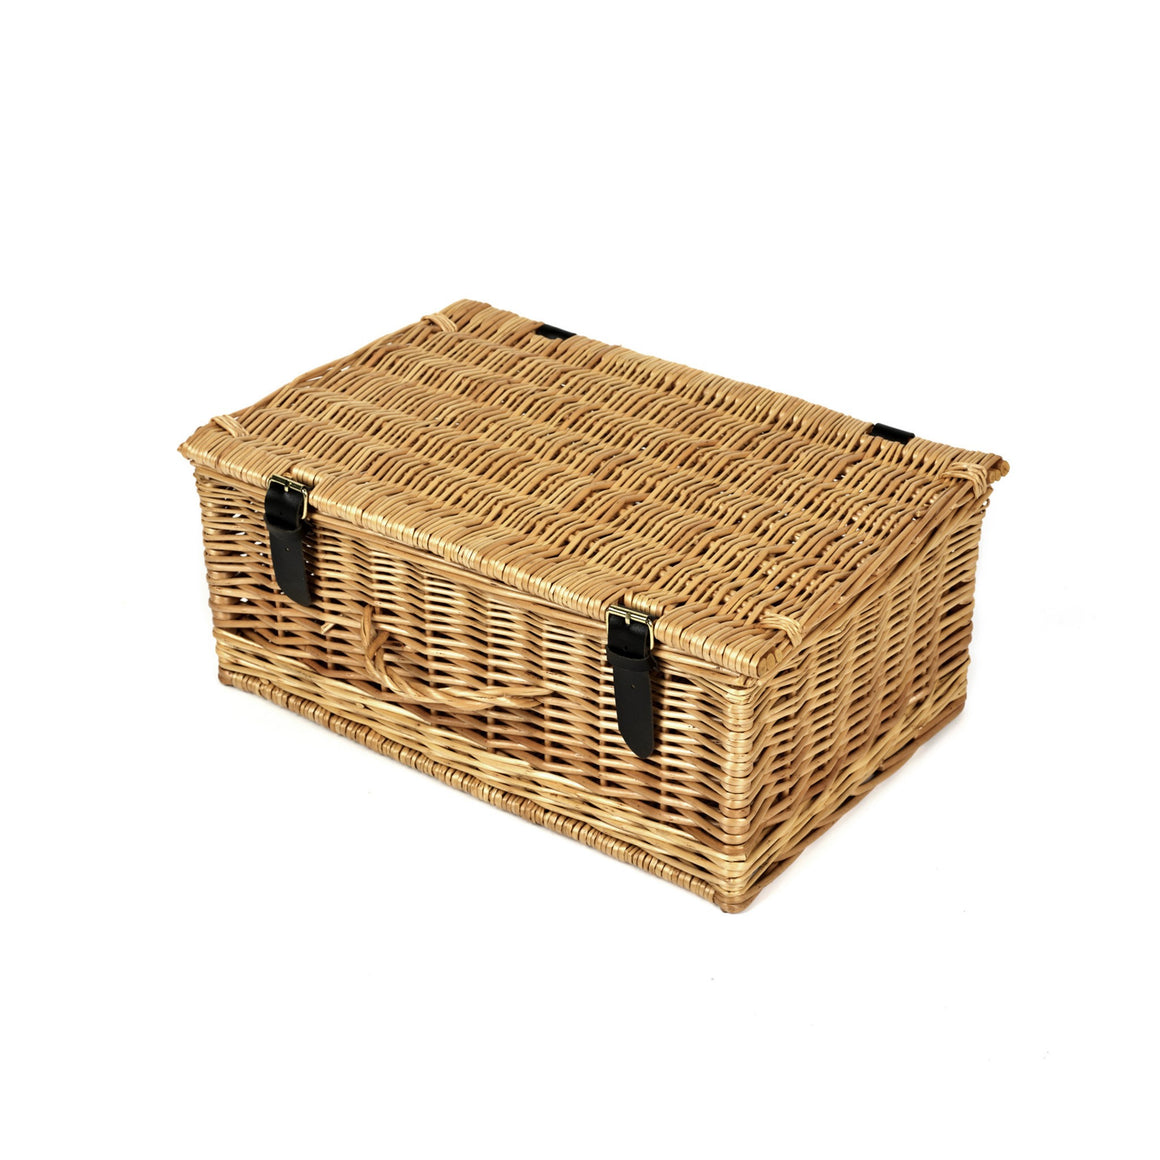 16 Inch Wicker Hamper - Empty - 42*28*18